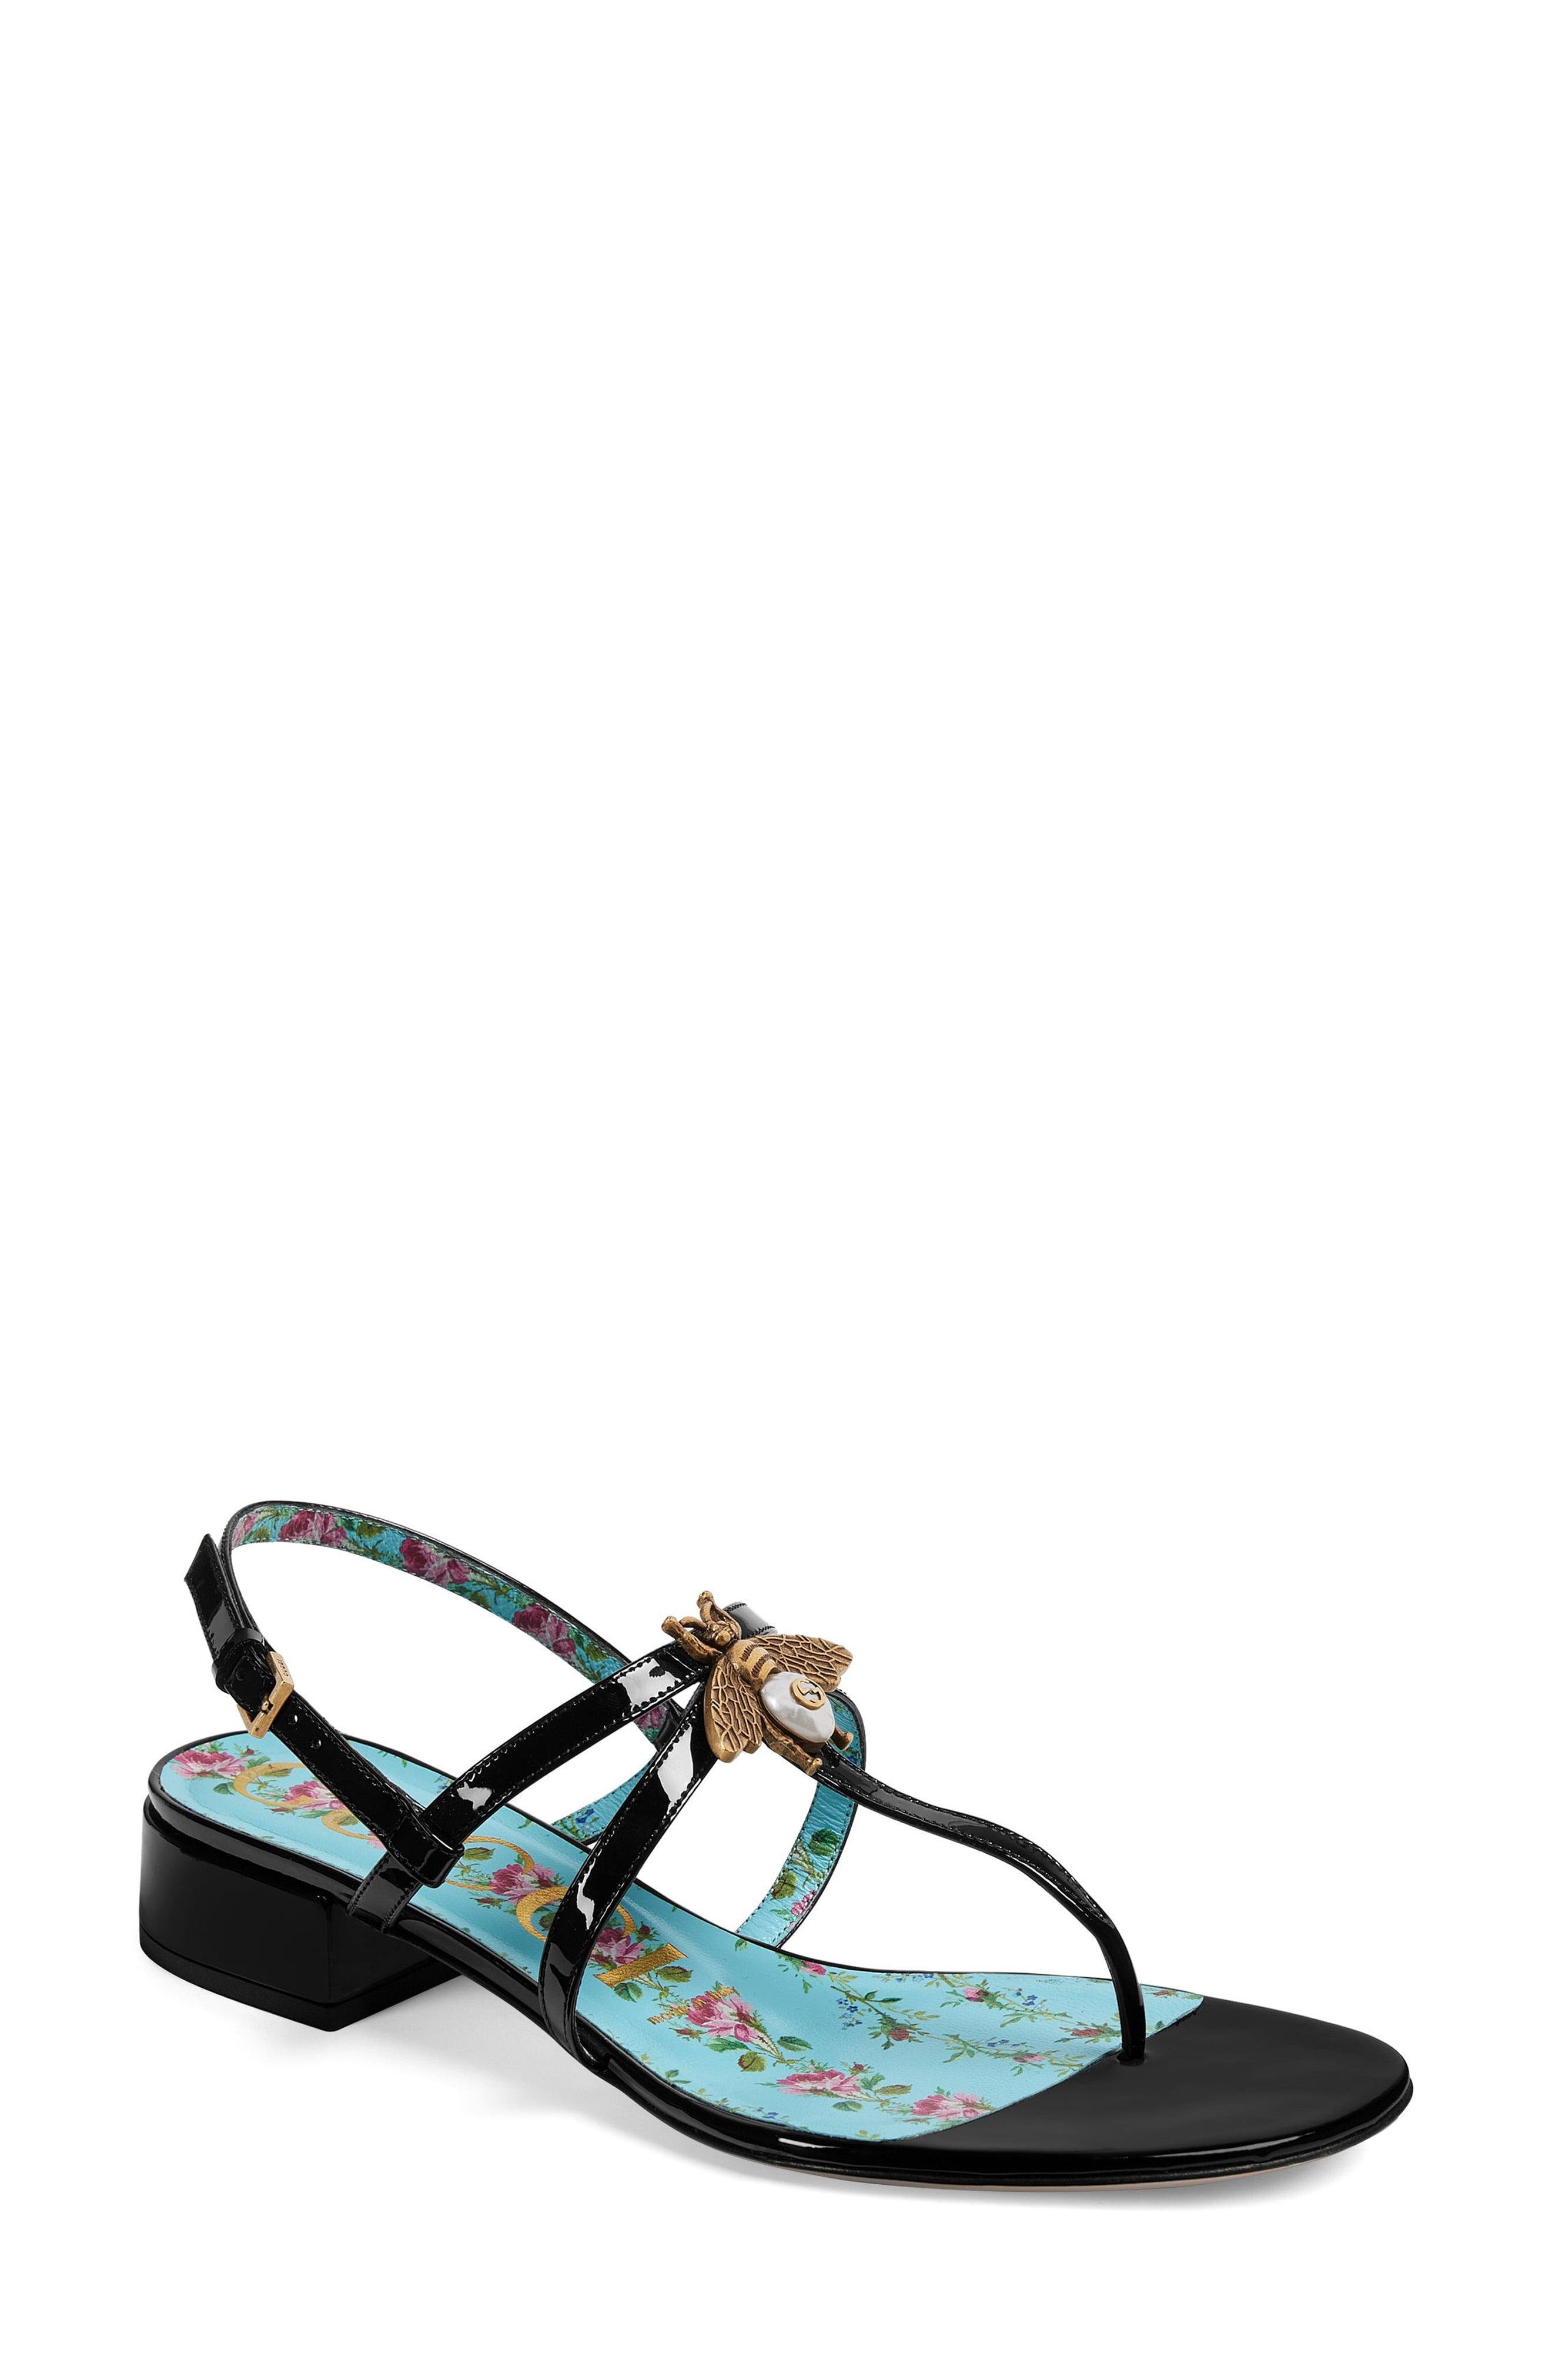 f3a338065d7 Lyst - Gucci Bee Thong Sandal in Black